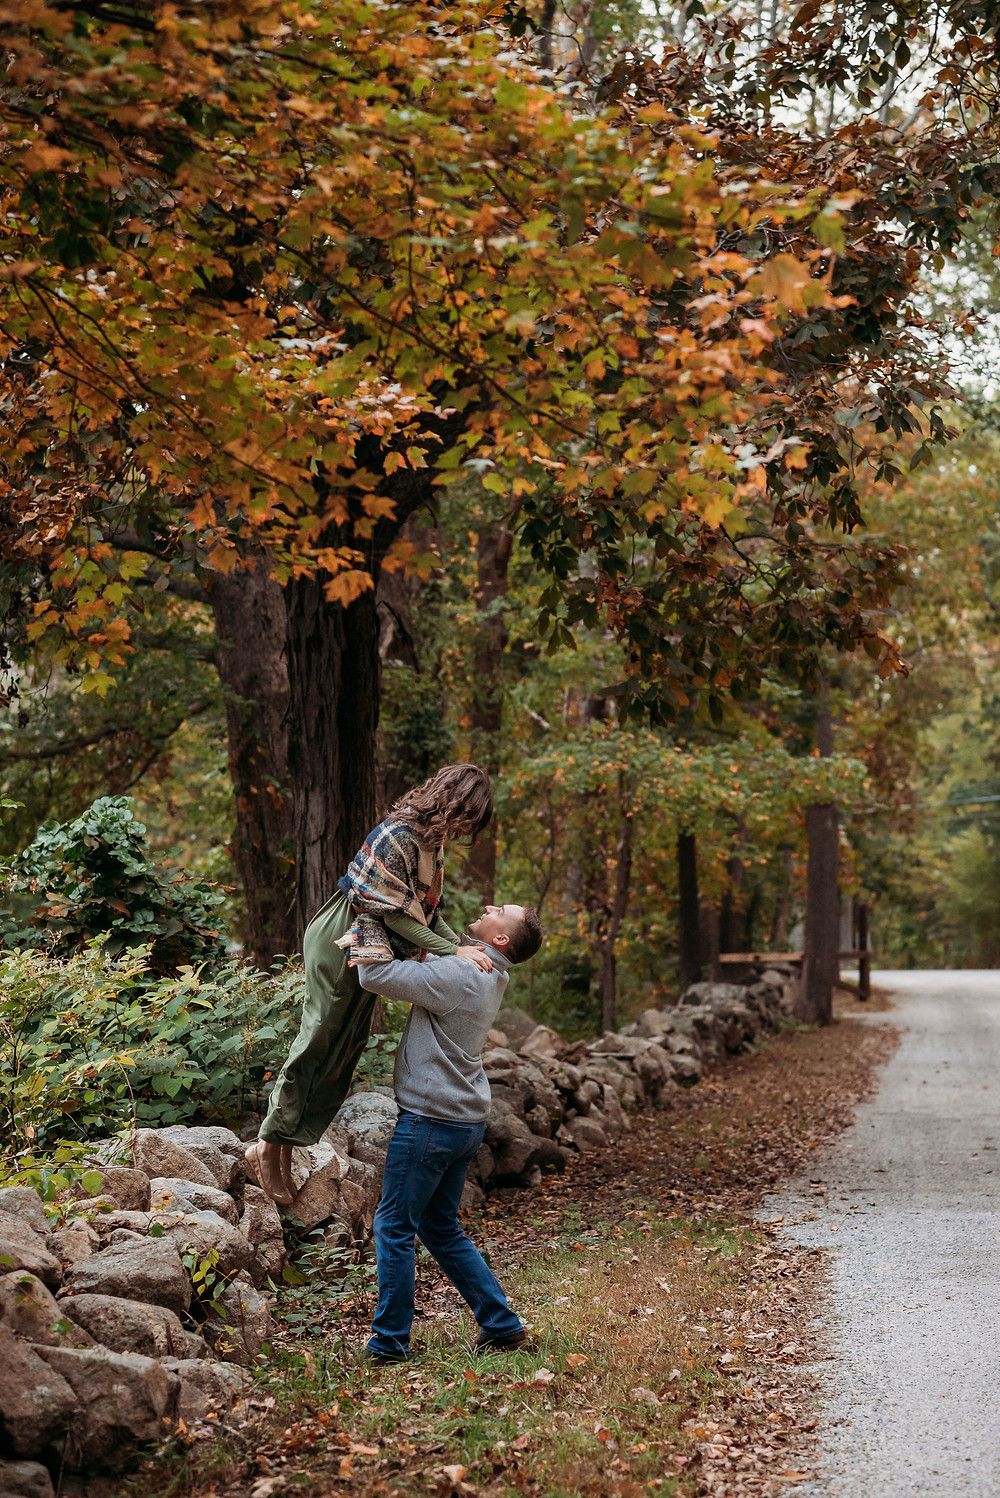 guy helps girl hop off of a rock wall on the side of the road. there is lots of fall foliage surrounding them